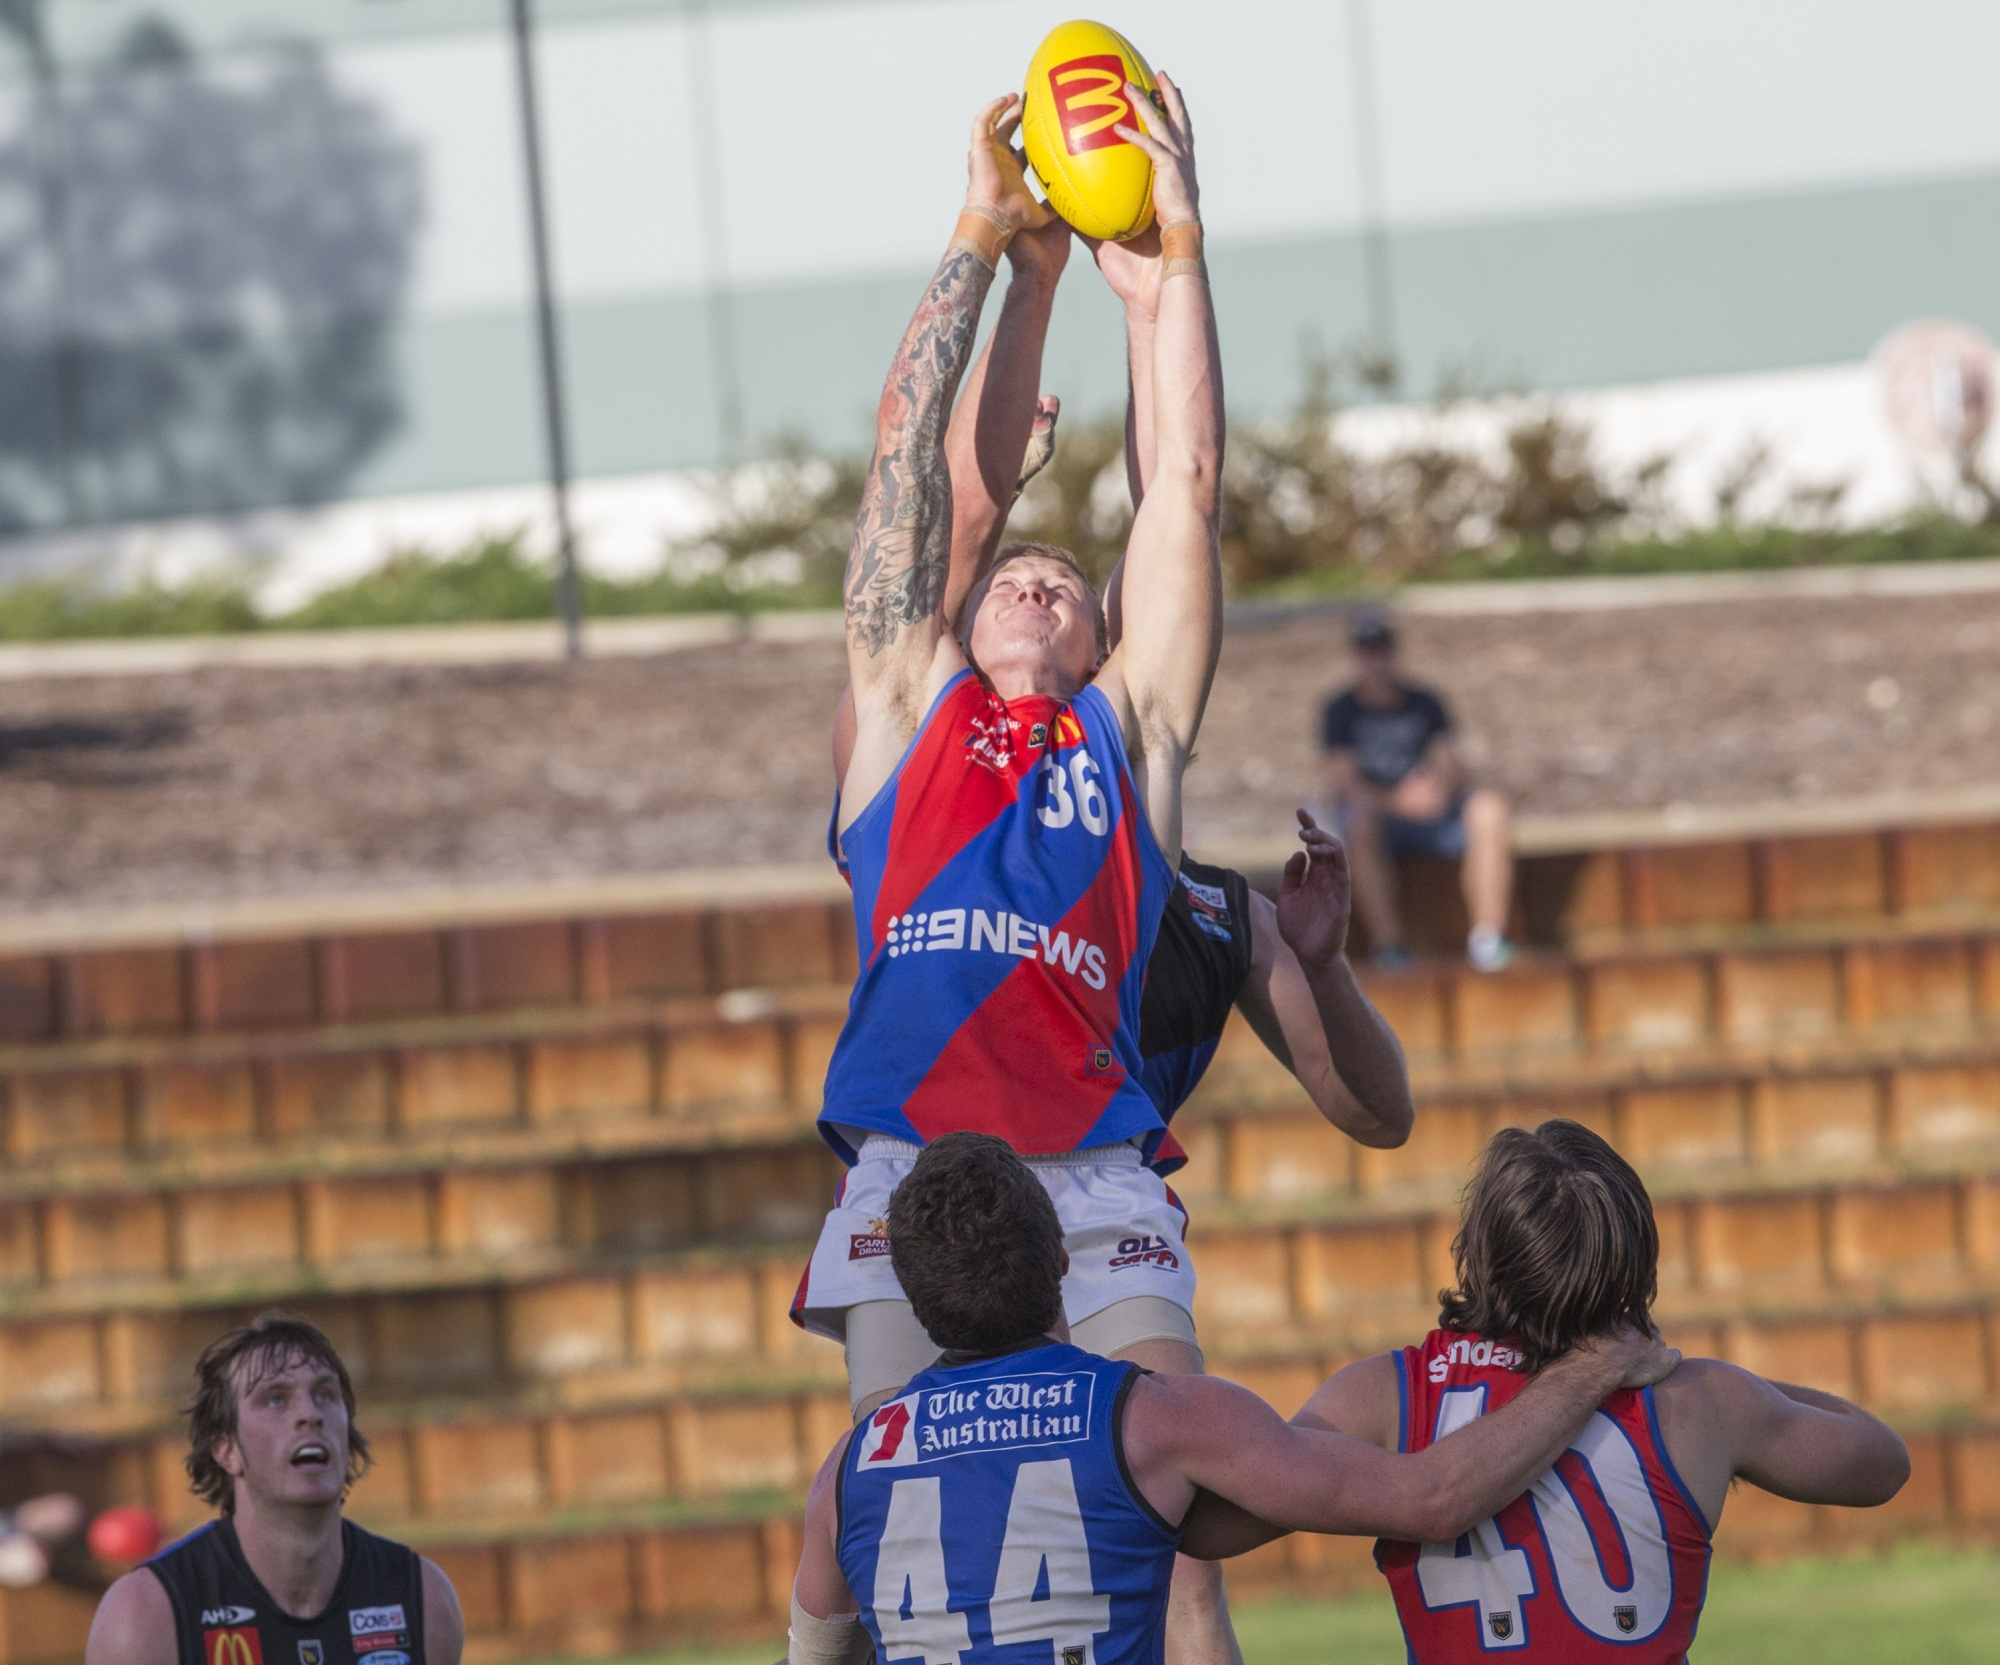 With the name change issue settled, focus turns to West Perth's derby against East Perth this weekend. Picture Dan White